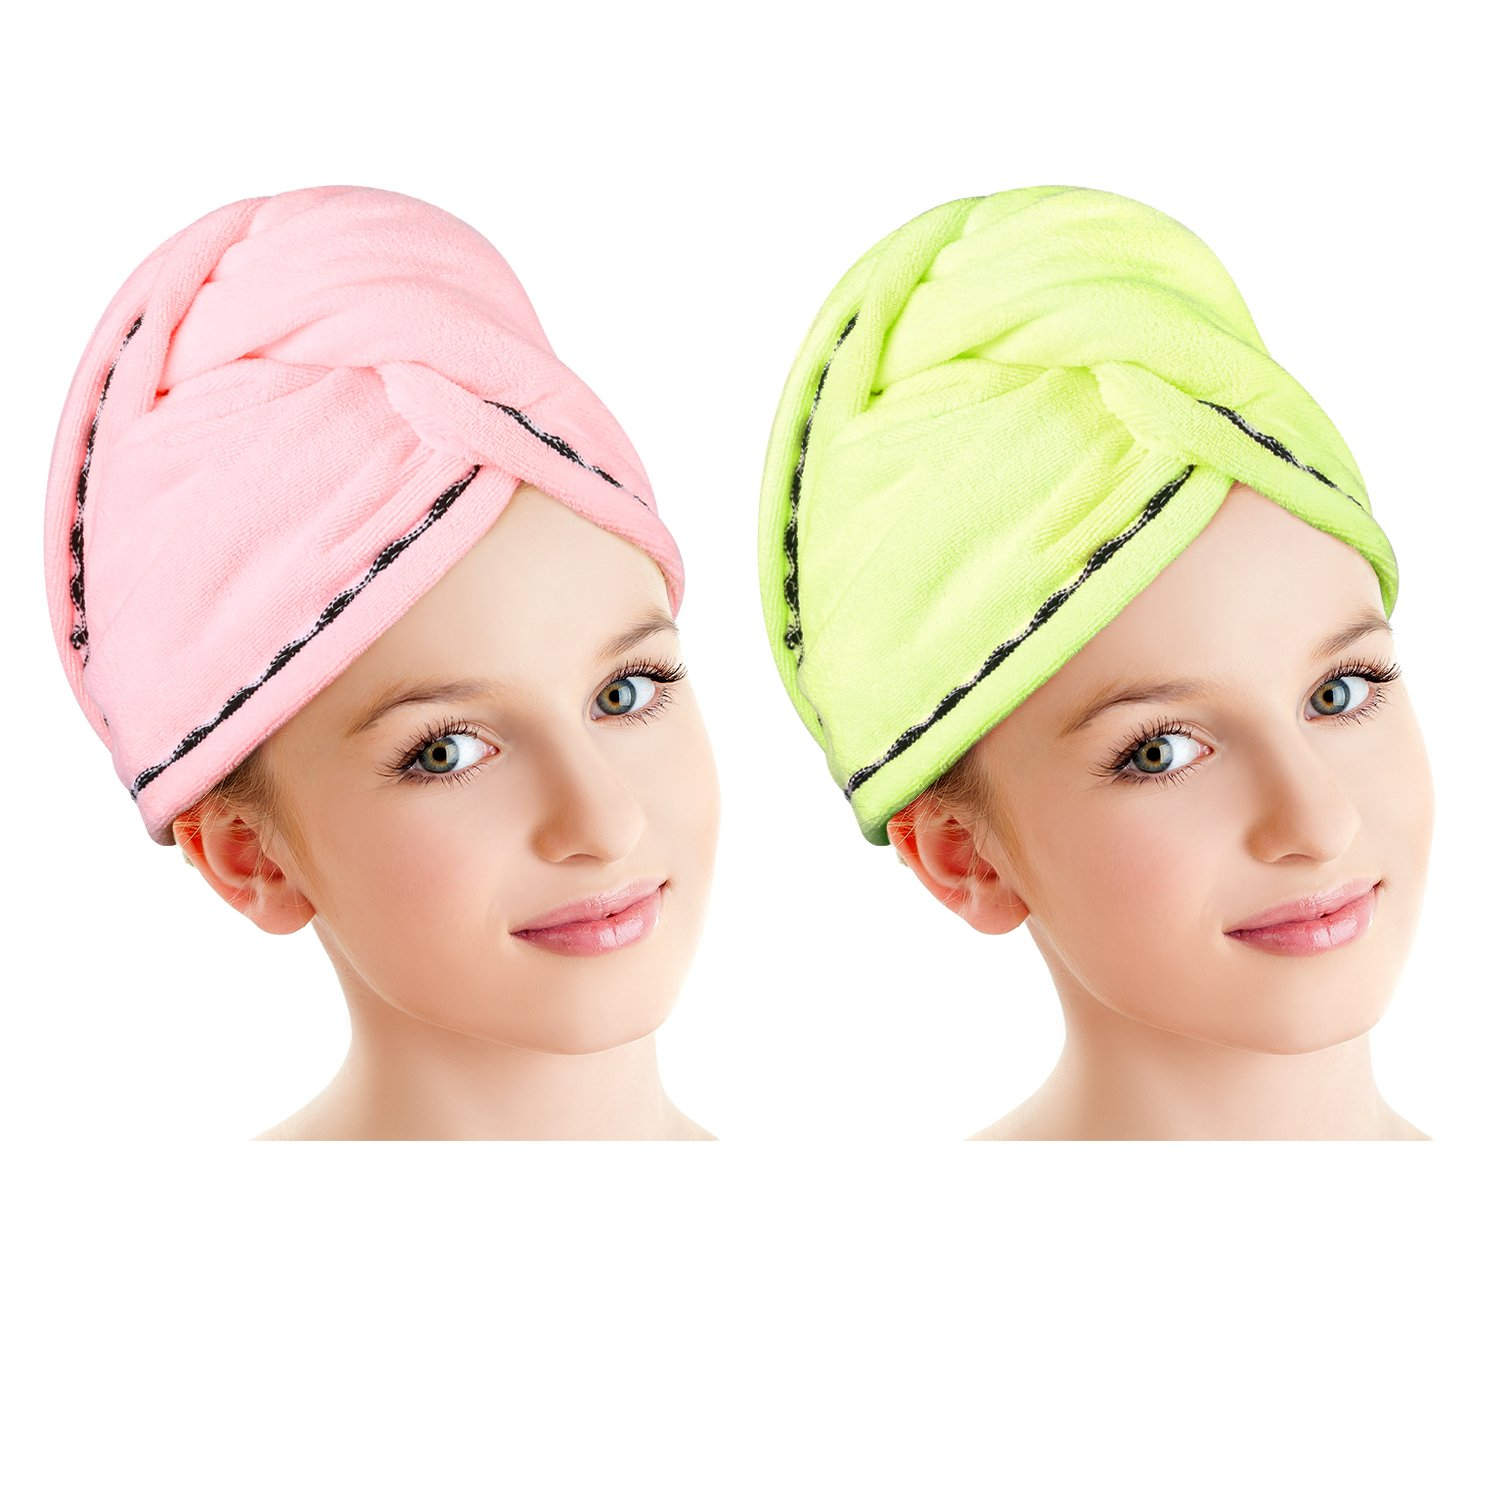 Luxspire 2 Pack Microfiber Hair Drying Towels Wrap Turban, Fast Drying Hair Cap, Bath Shower Head Towel with Buttons, Super Water-absorbent - Yellow & Pink